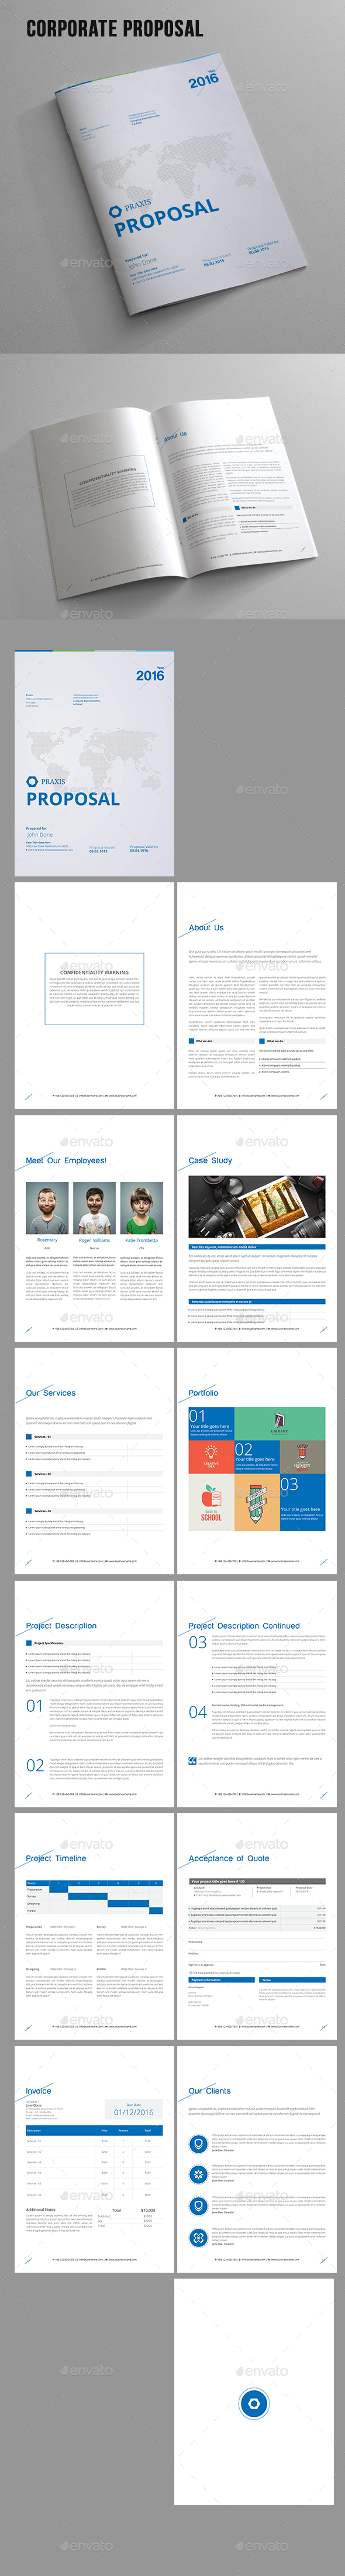 Corporate Proposal - Proposals & Invoices Stationery